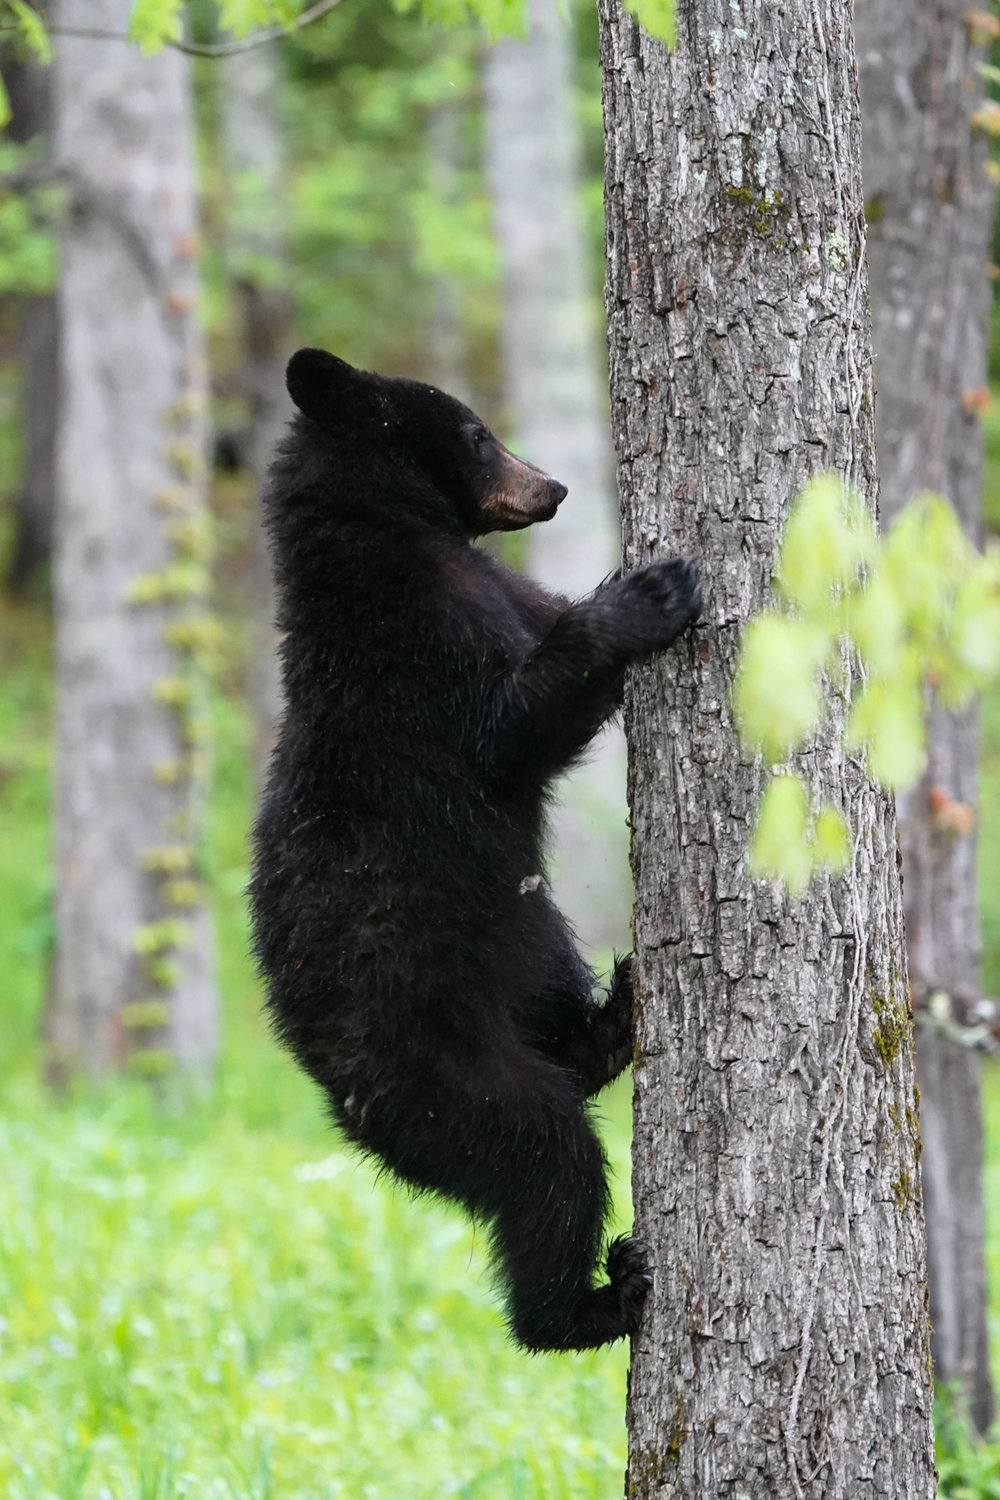 cubs are just as comfortable in the trees as on the ground. This is the first place to head at any sign of trouble.